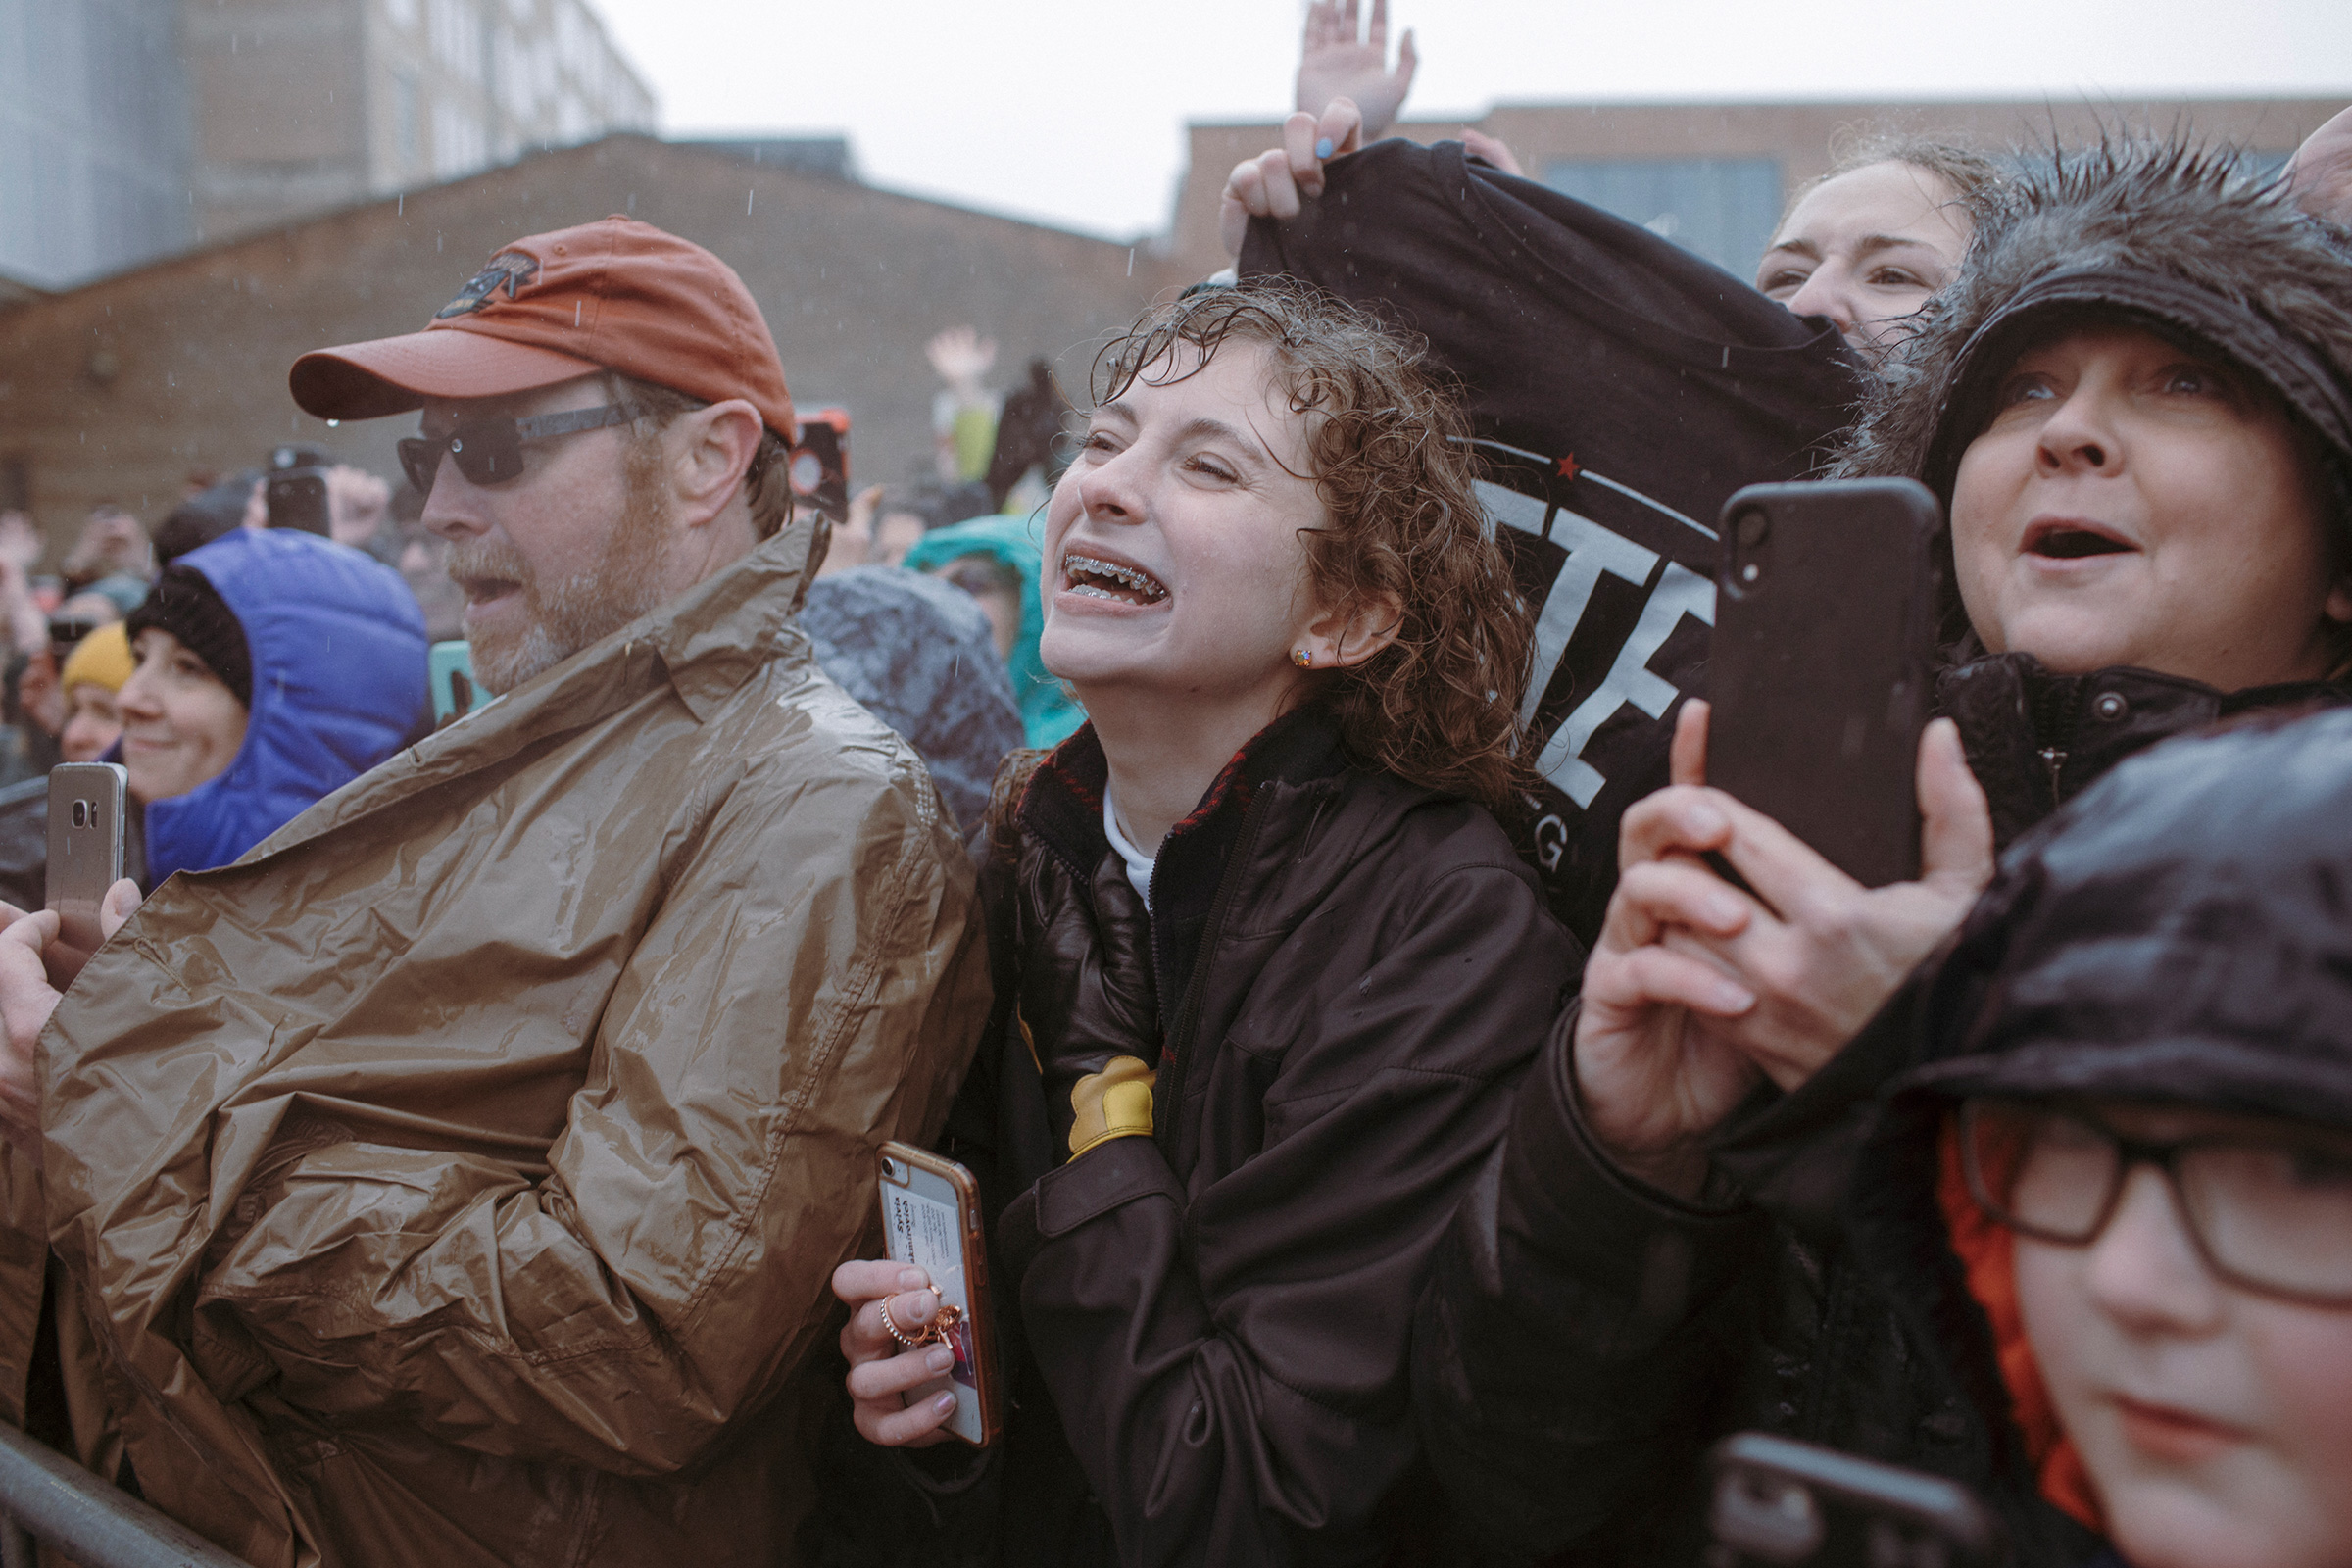 Supporters wait in the rain on April 14 for Pete Buttigieg's presidential campaign announcement in South Bend. May 13 issue.